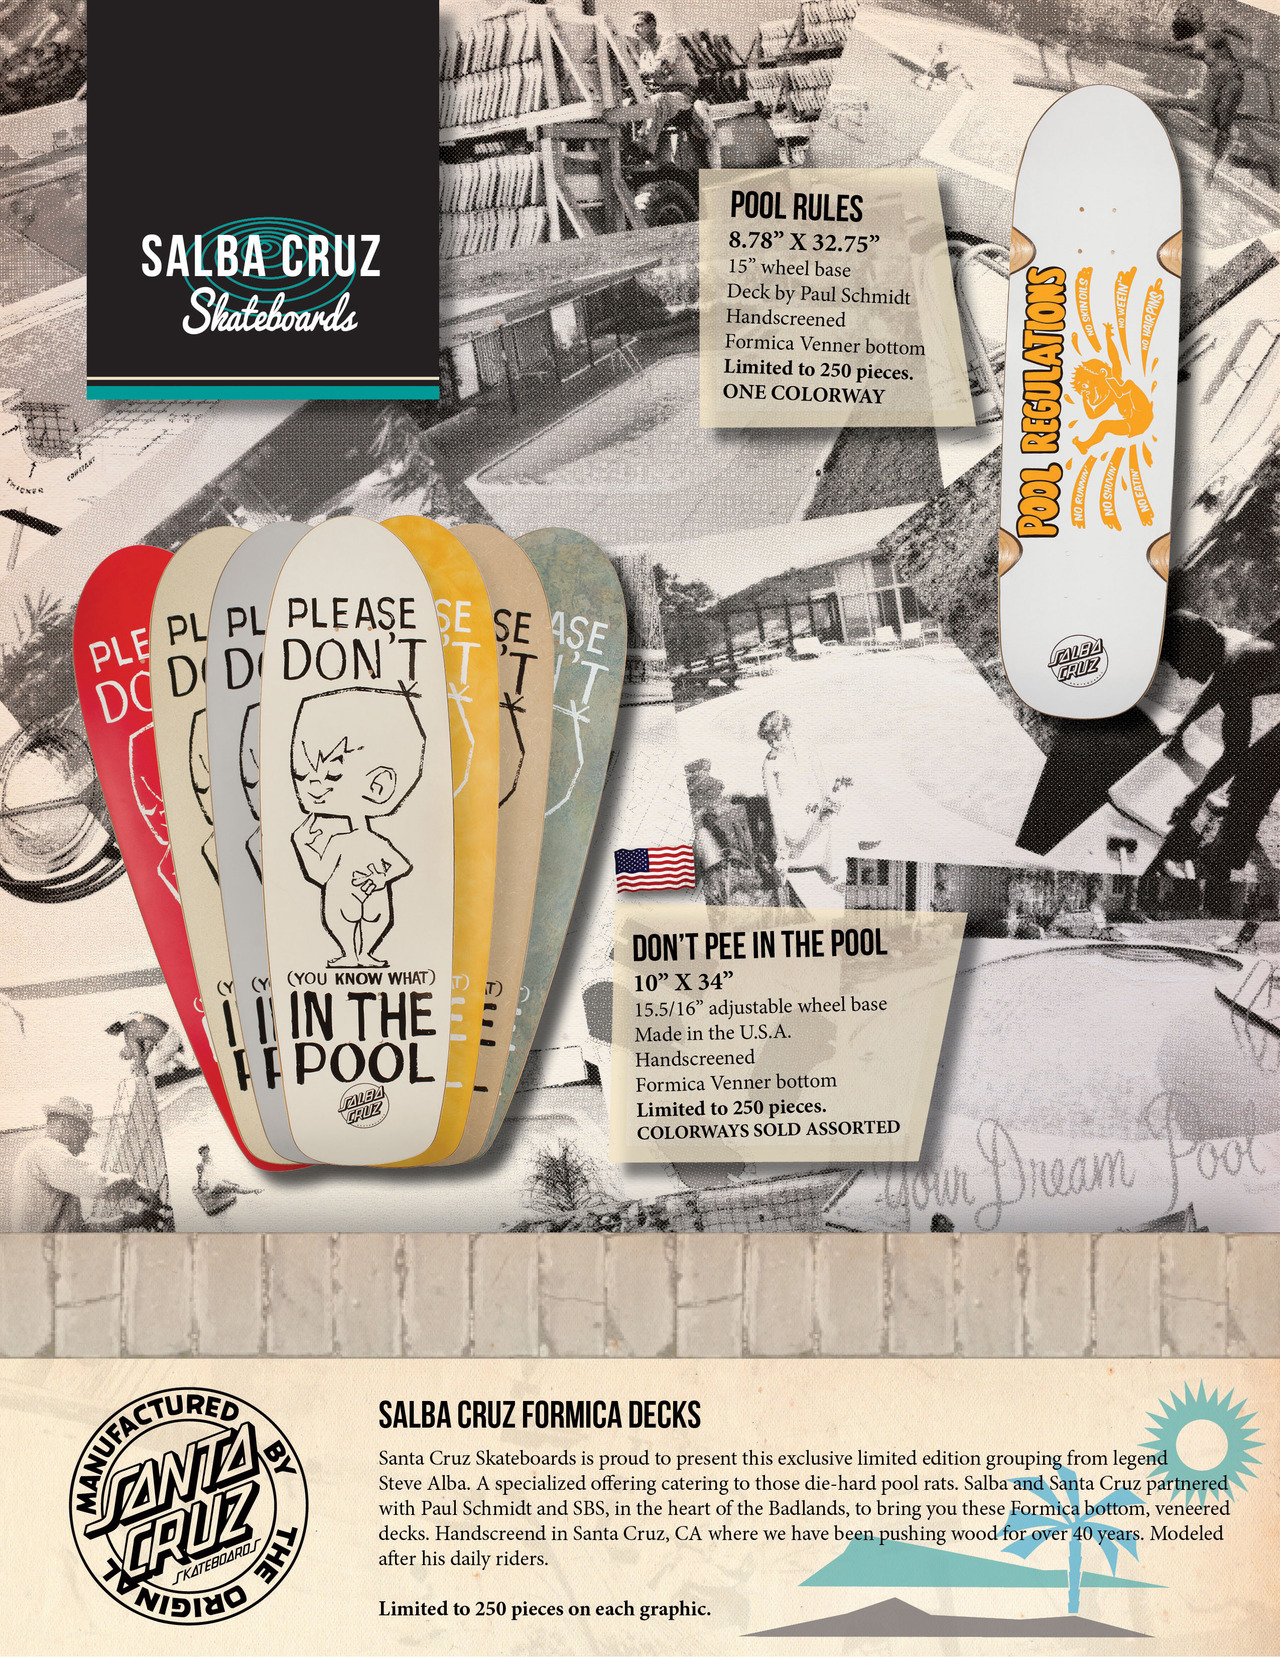 SANTA CRUZ SKATEBOARDS - SALBA CRUZ